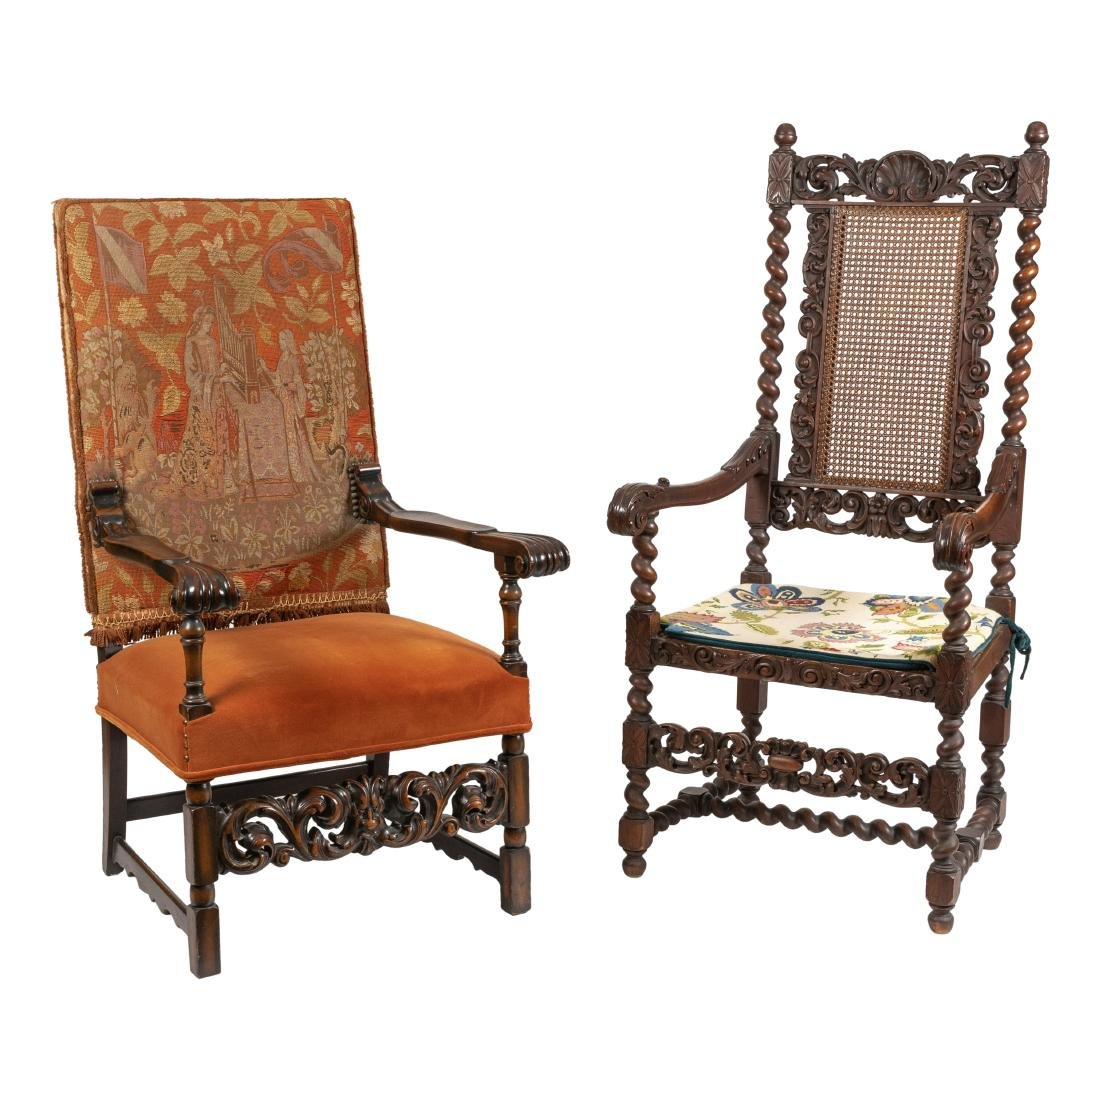 Antique Arm Chairs - Needlepoint & Cane